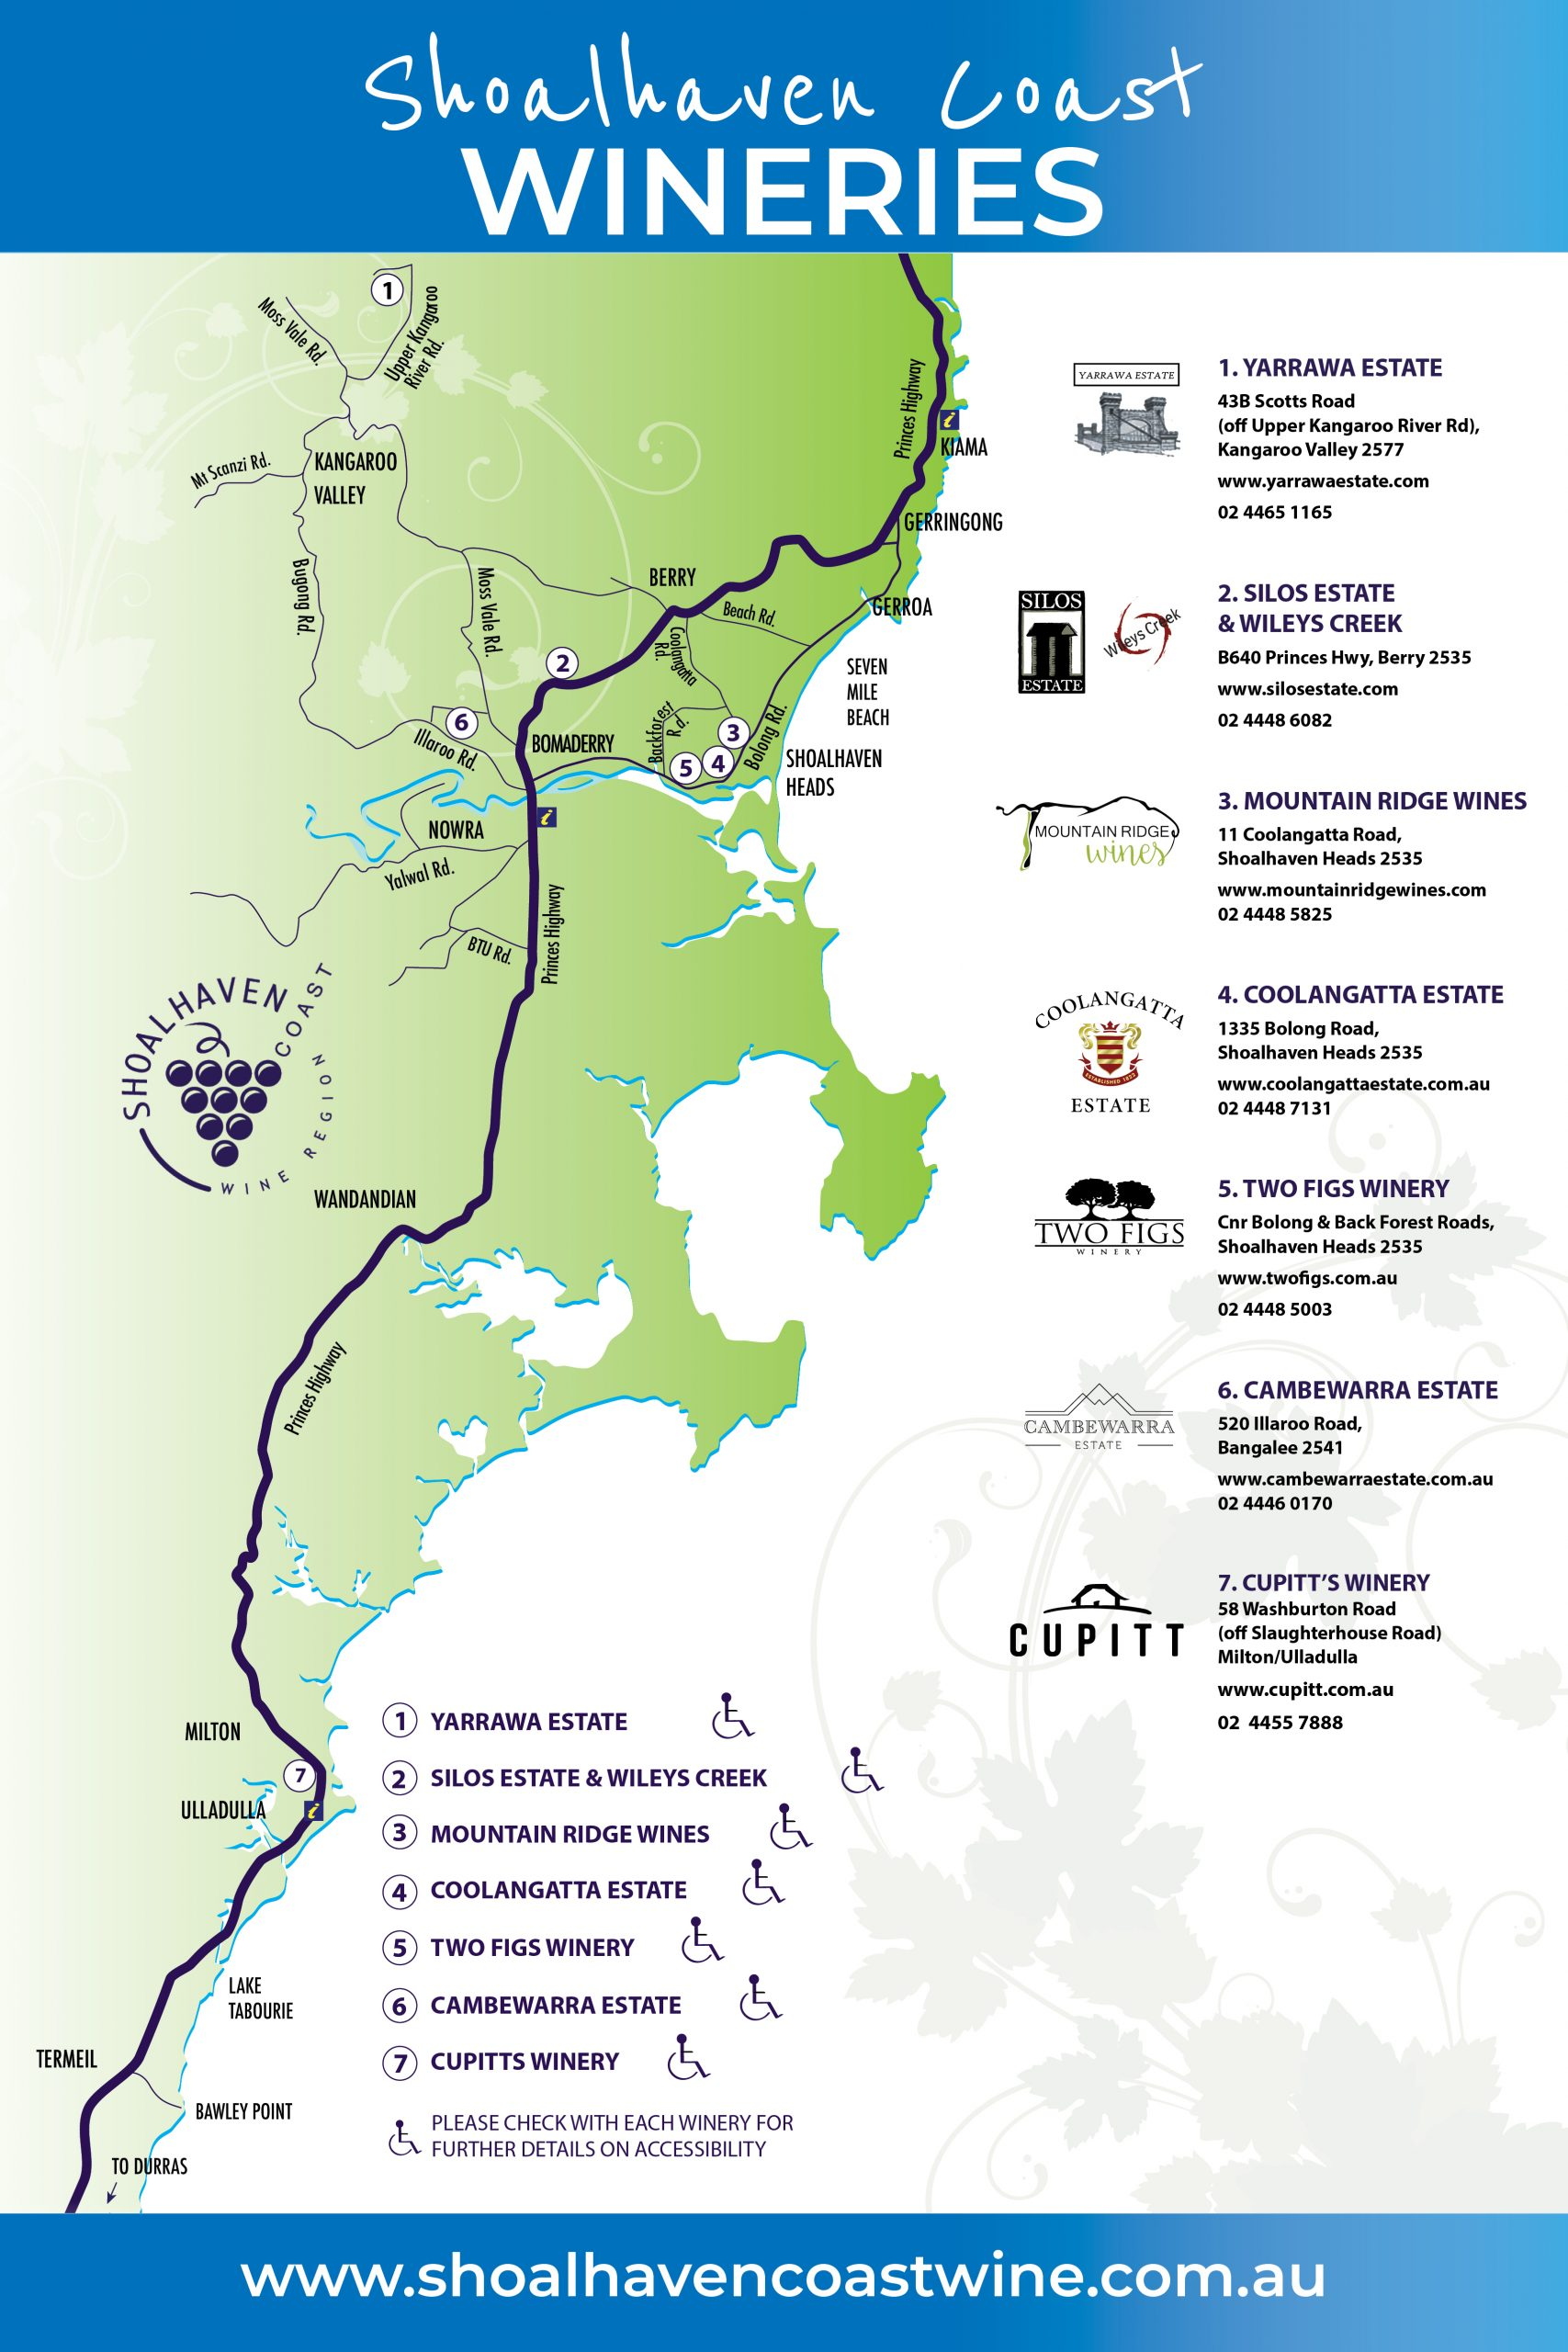 Shoalhaven Coast Wineries - Wine Trail Map 2020